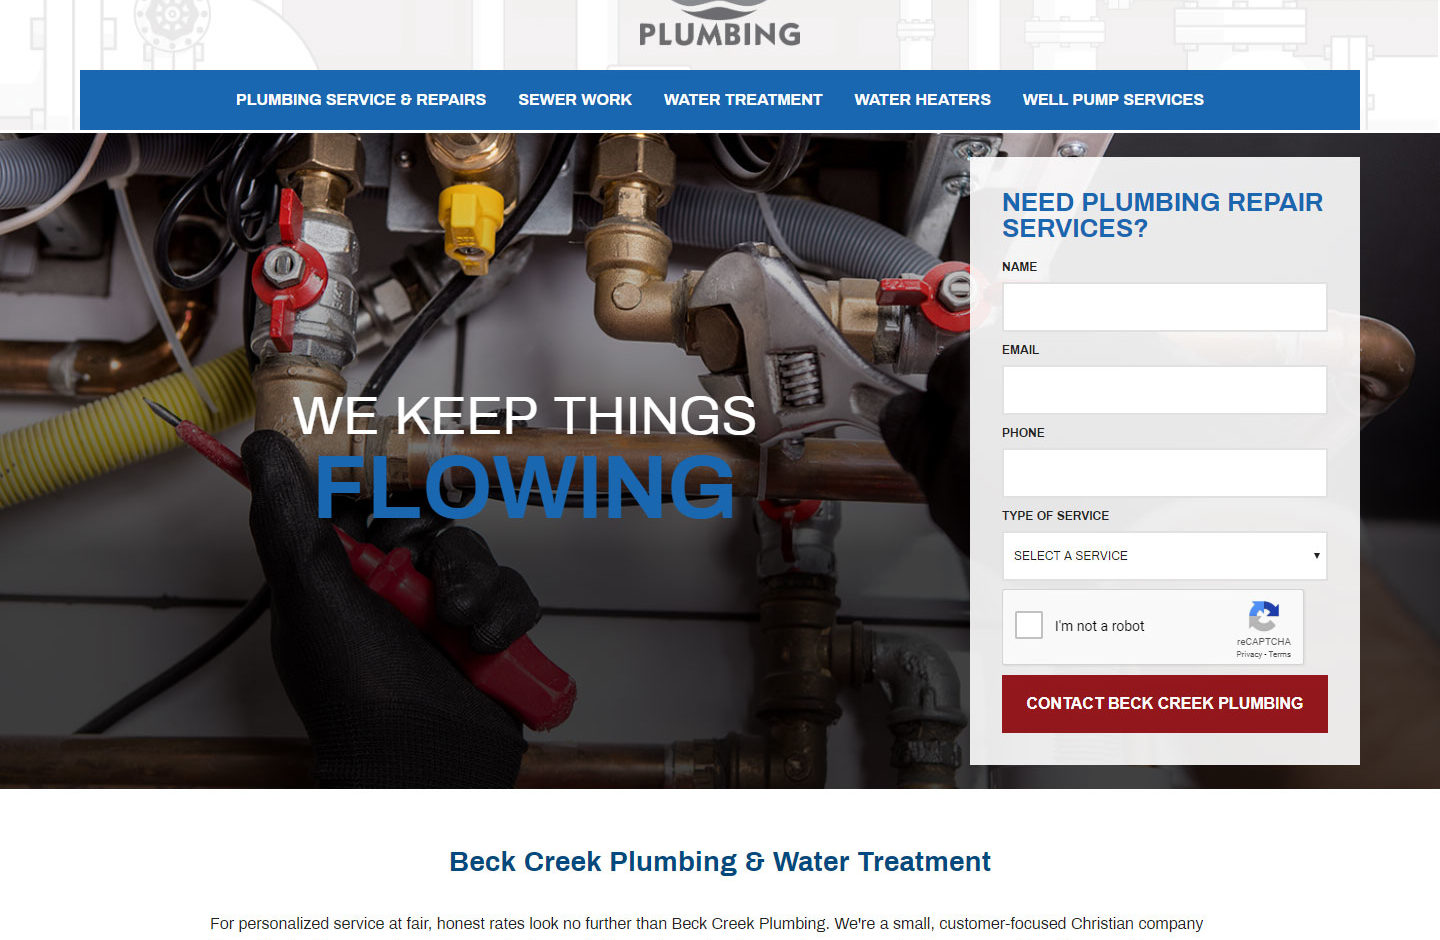 Beck Creek Plumbing